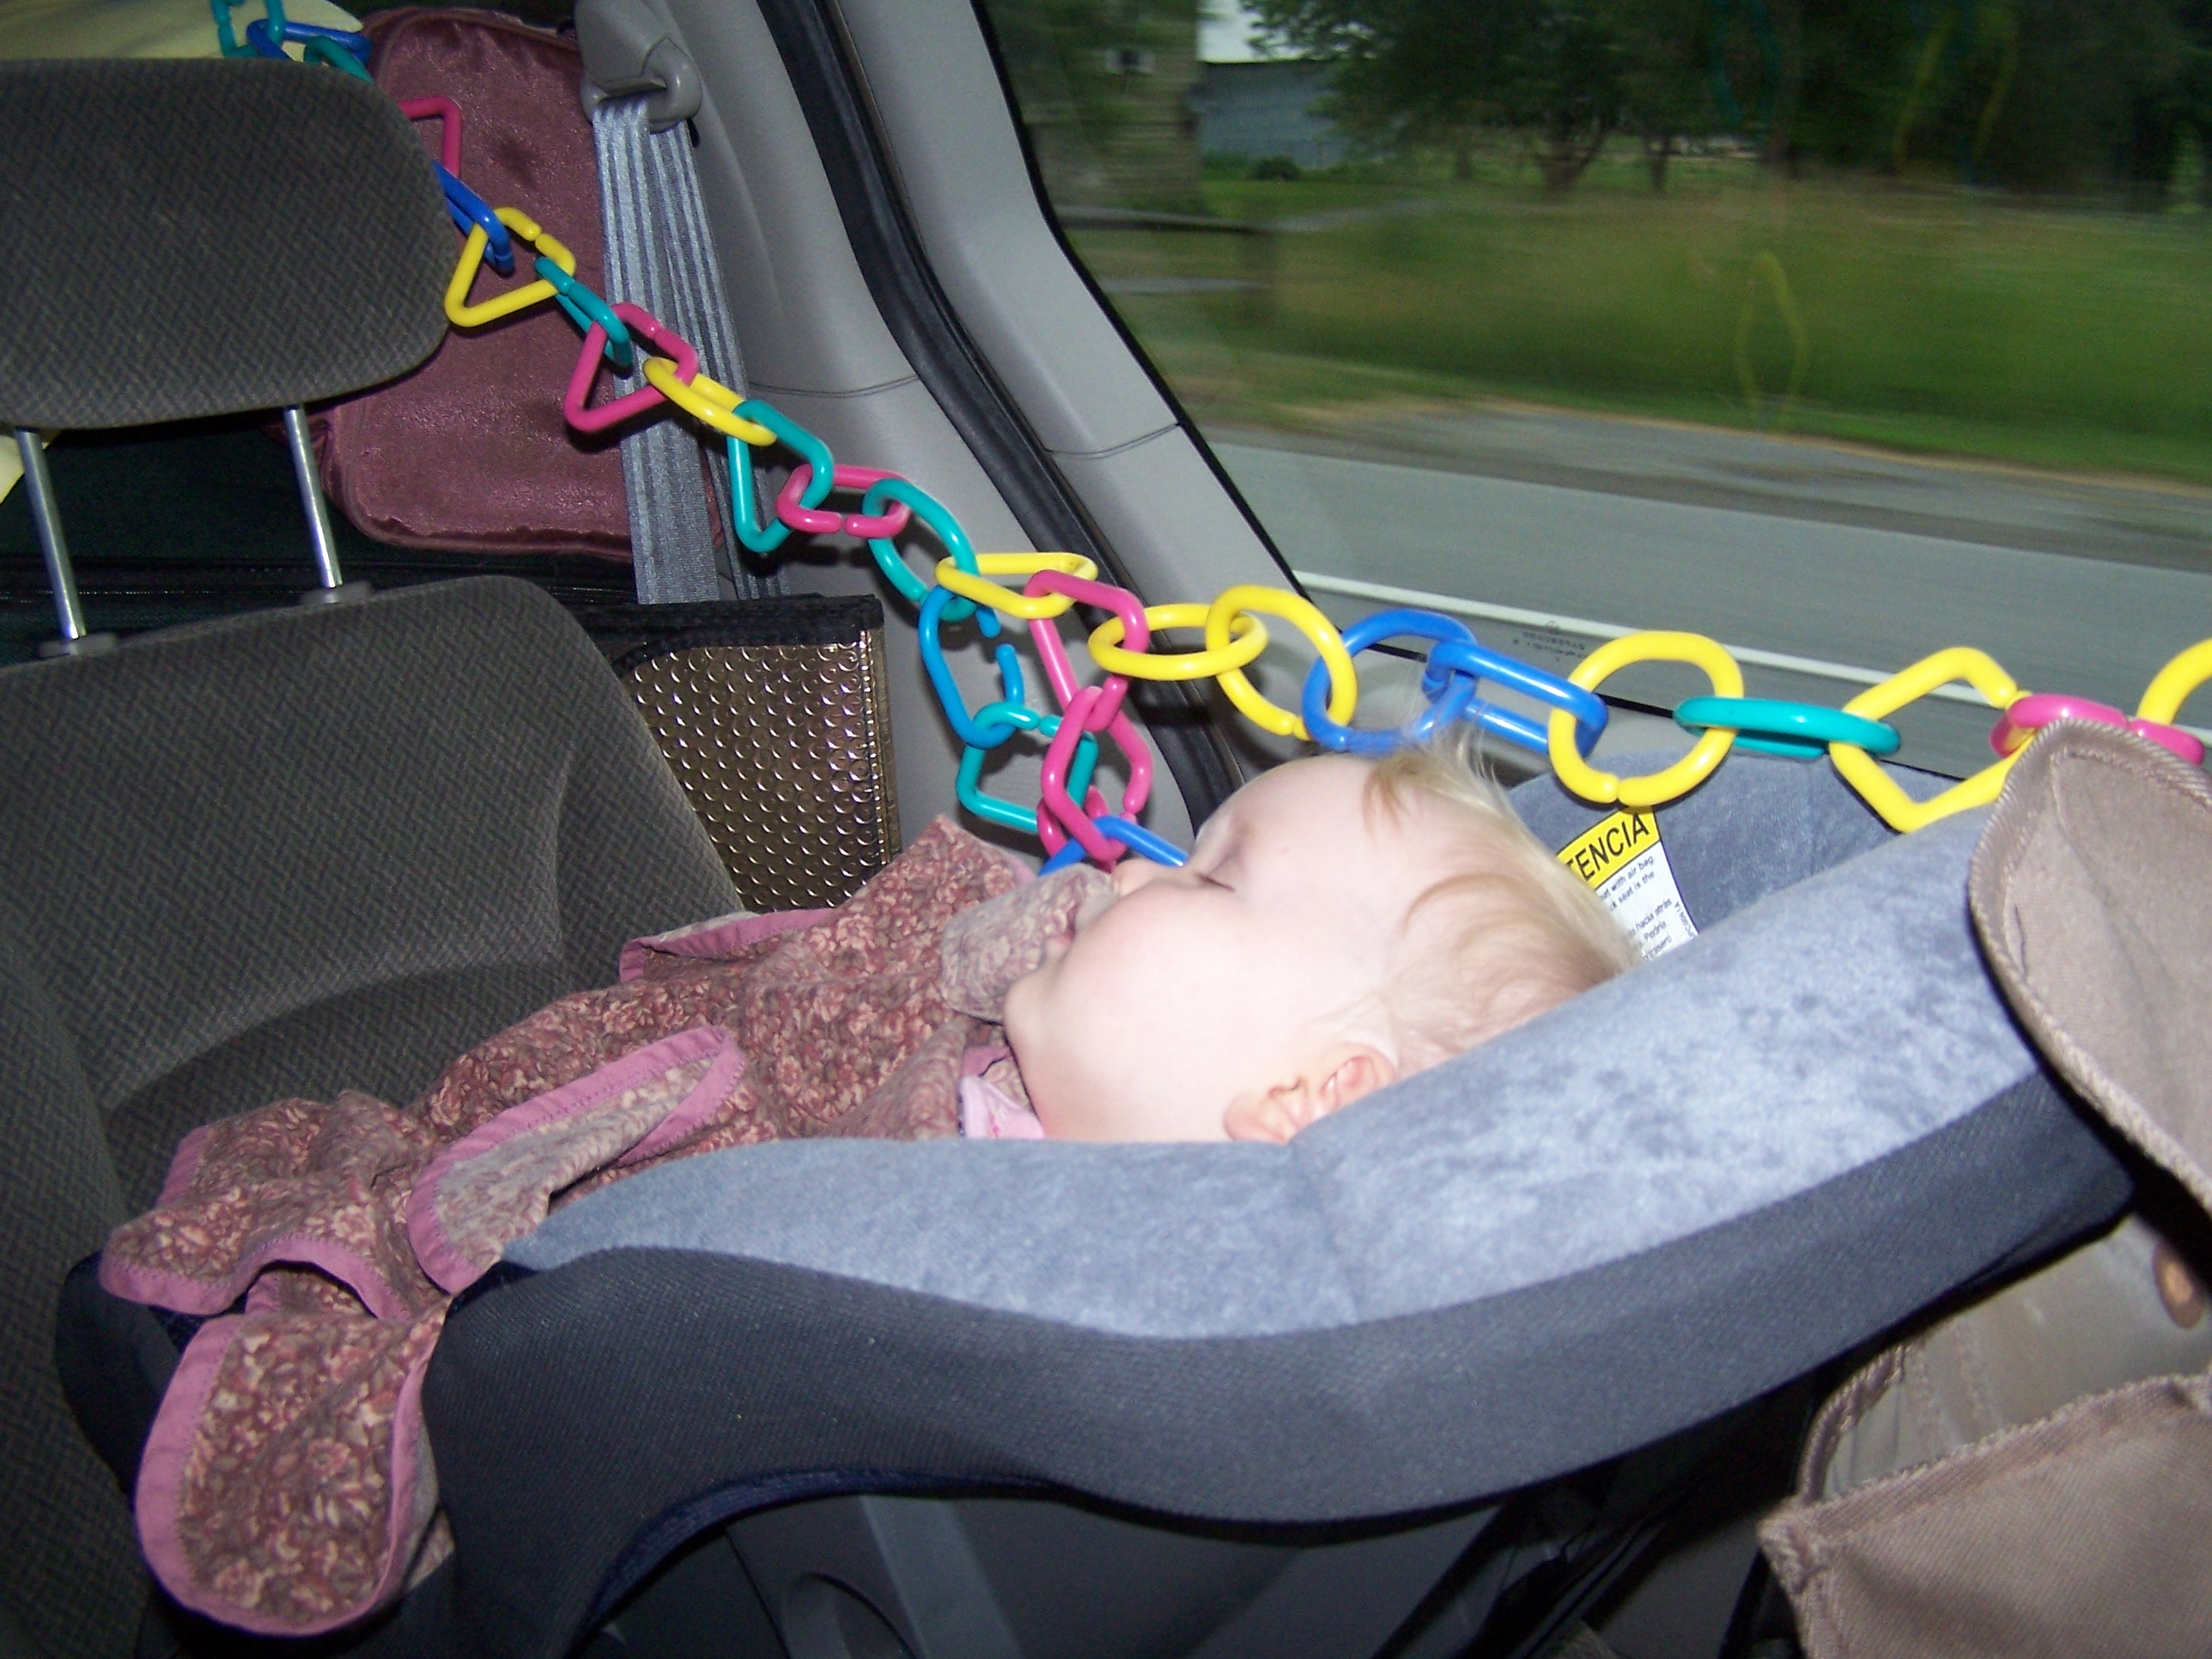 Using Some Play Links He Devised A Contraption That Hung Over The Car Seat From This We Of Pumpkins Favorite Toys Like